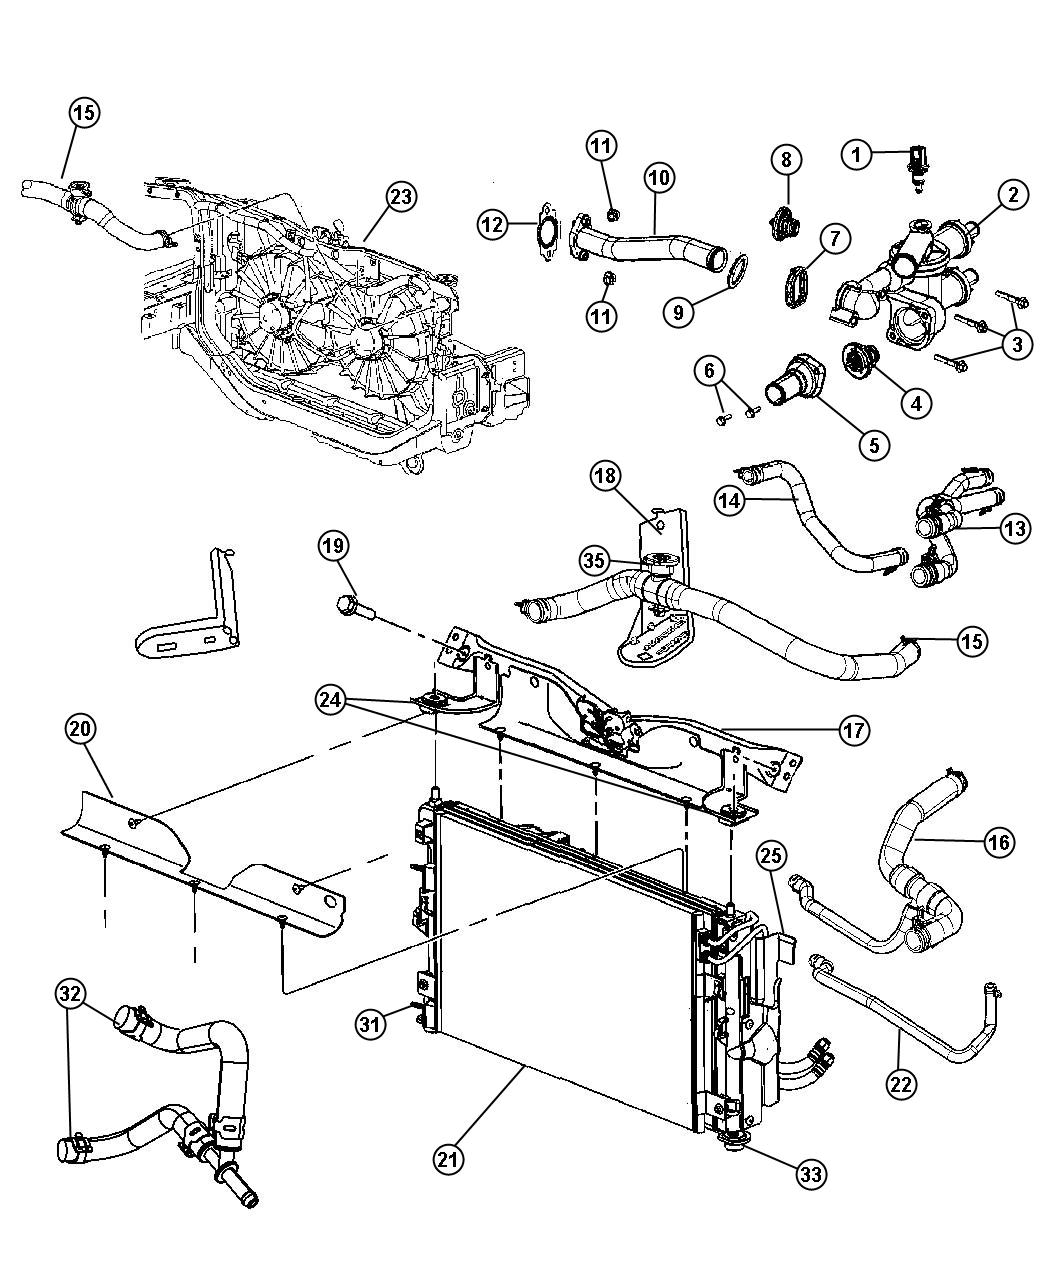 Jeep Patriot Condenser Air Conditioning Plumbing